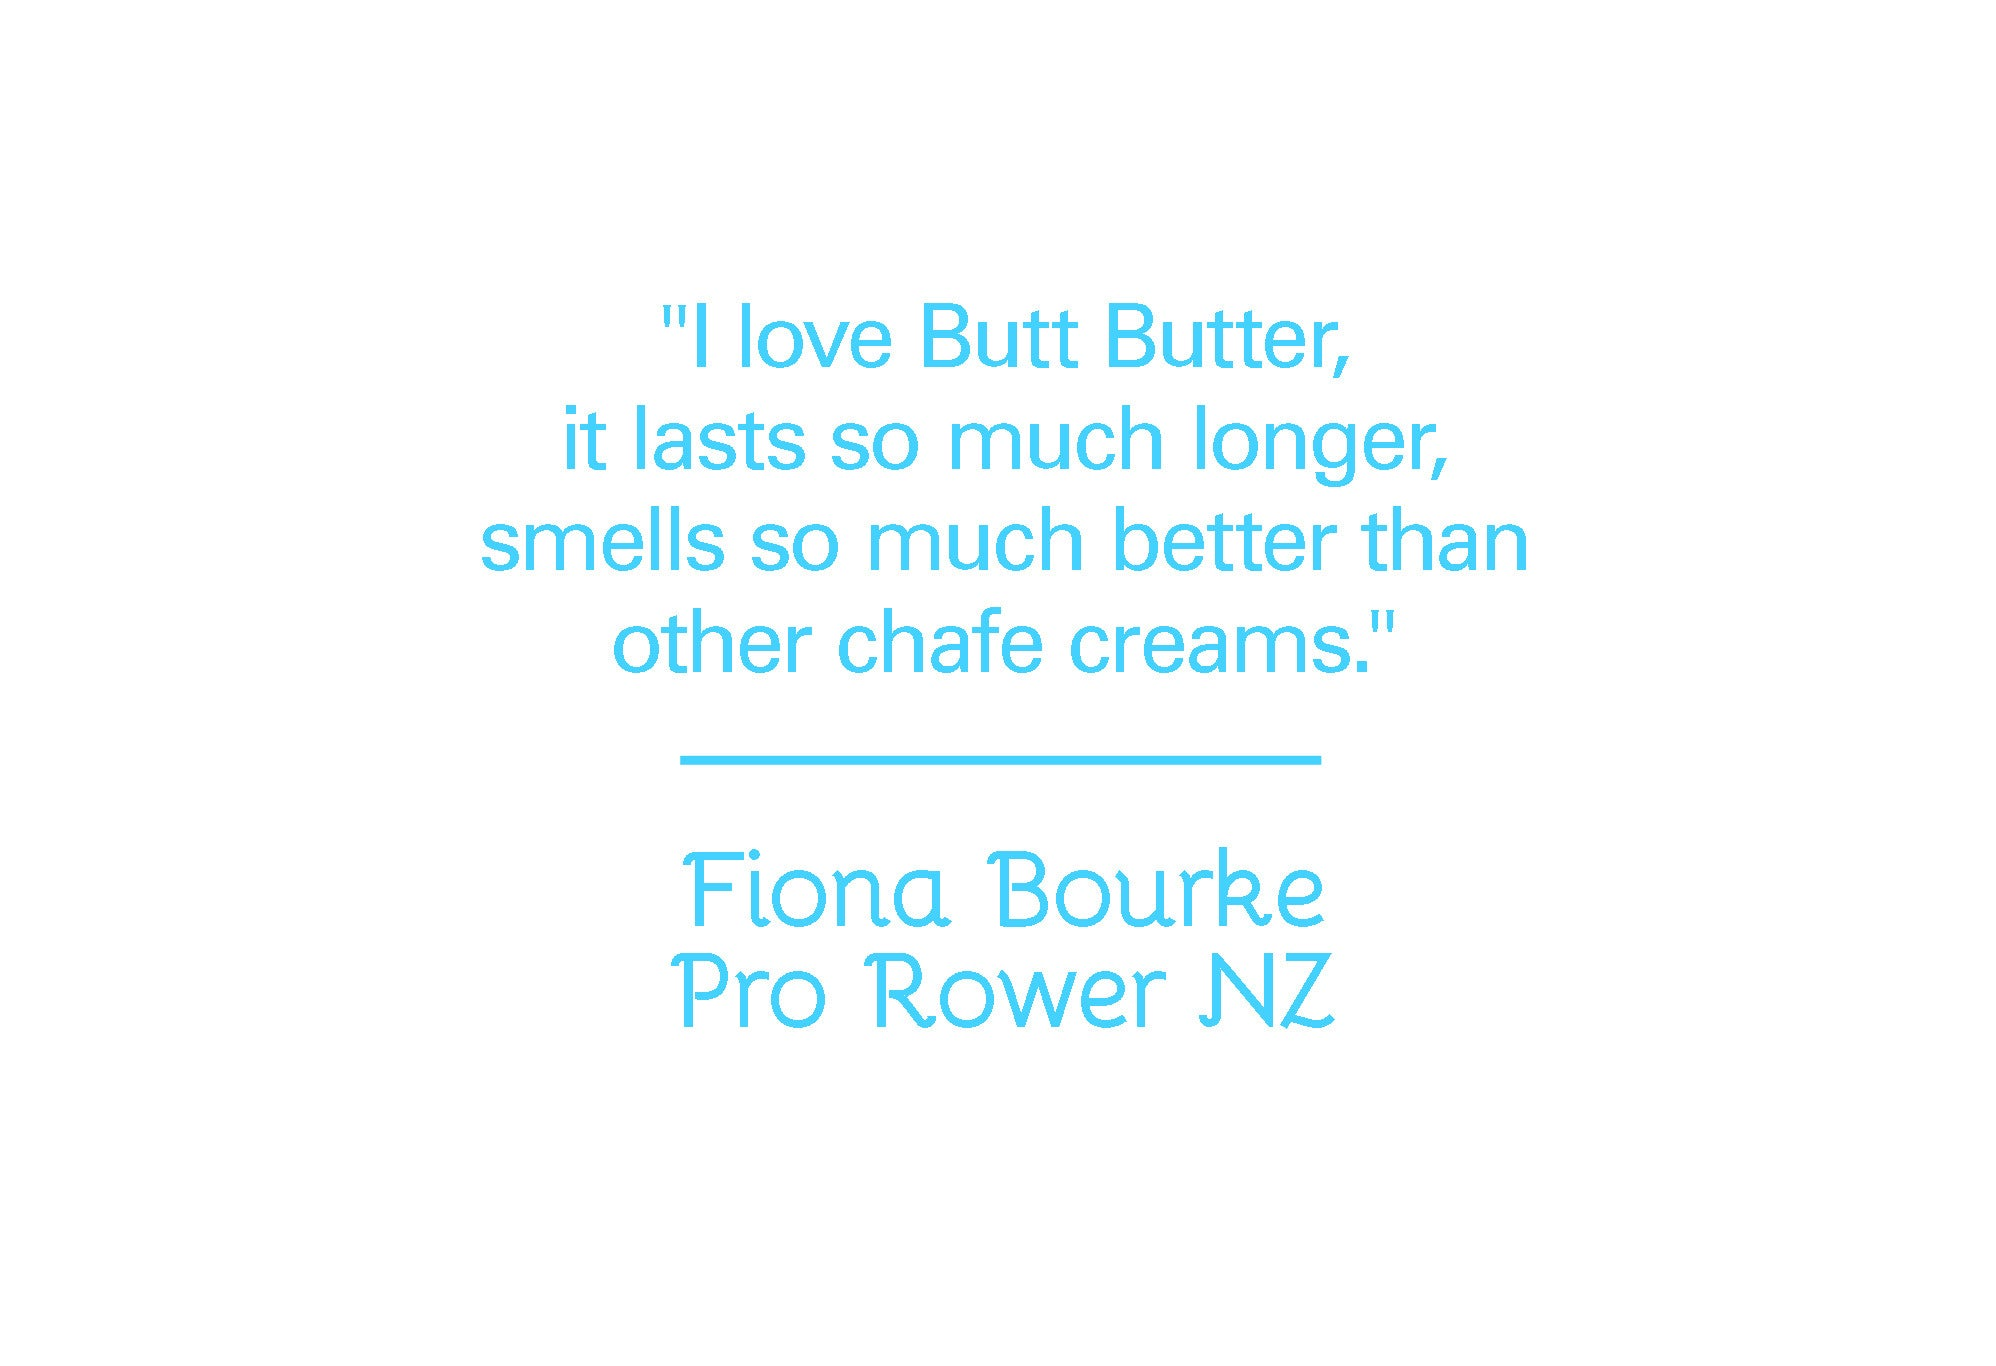 Fiona Bourke Pro Rower NZ - Sweet Cheeks NZ